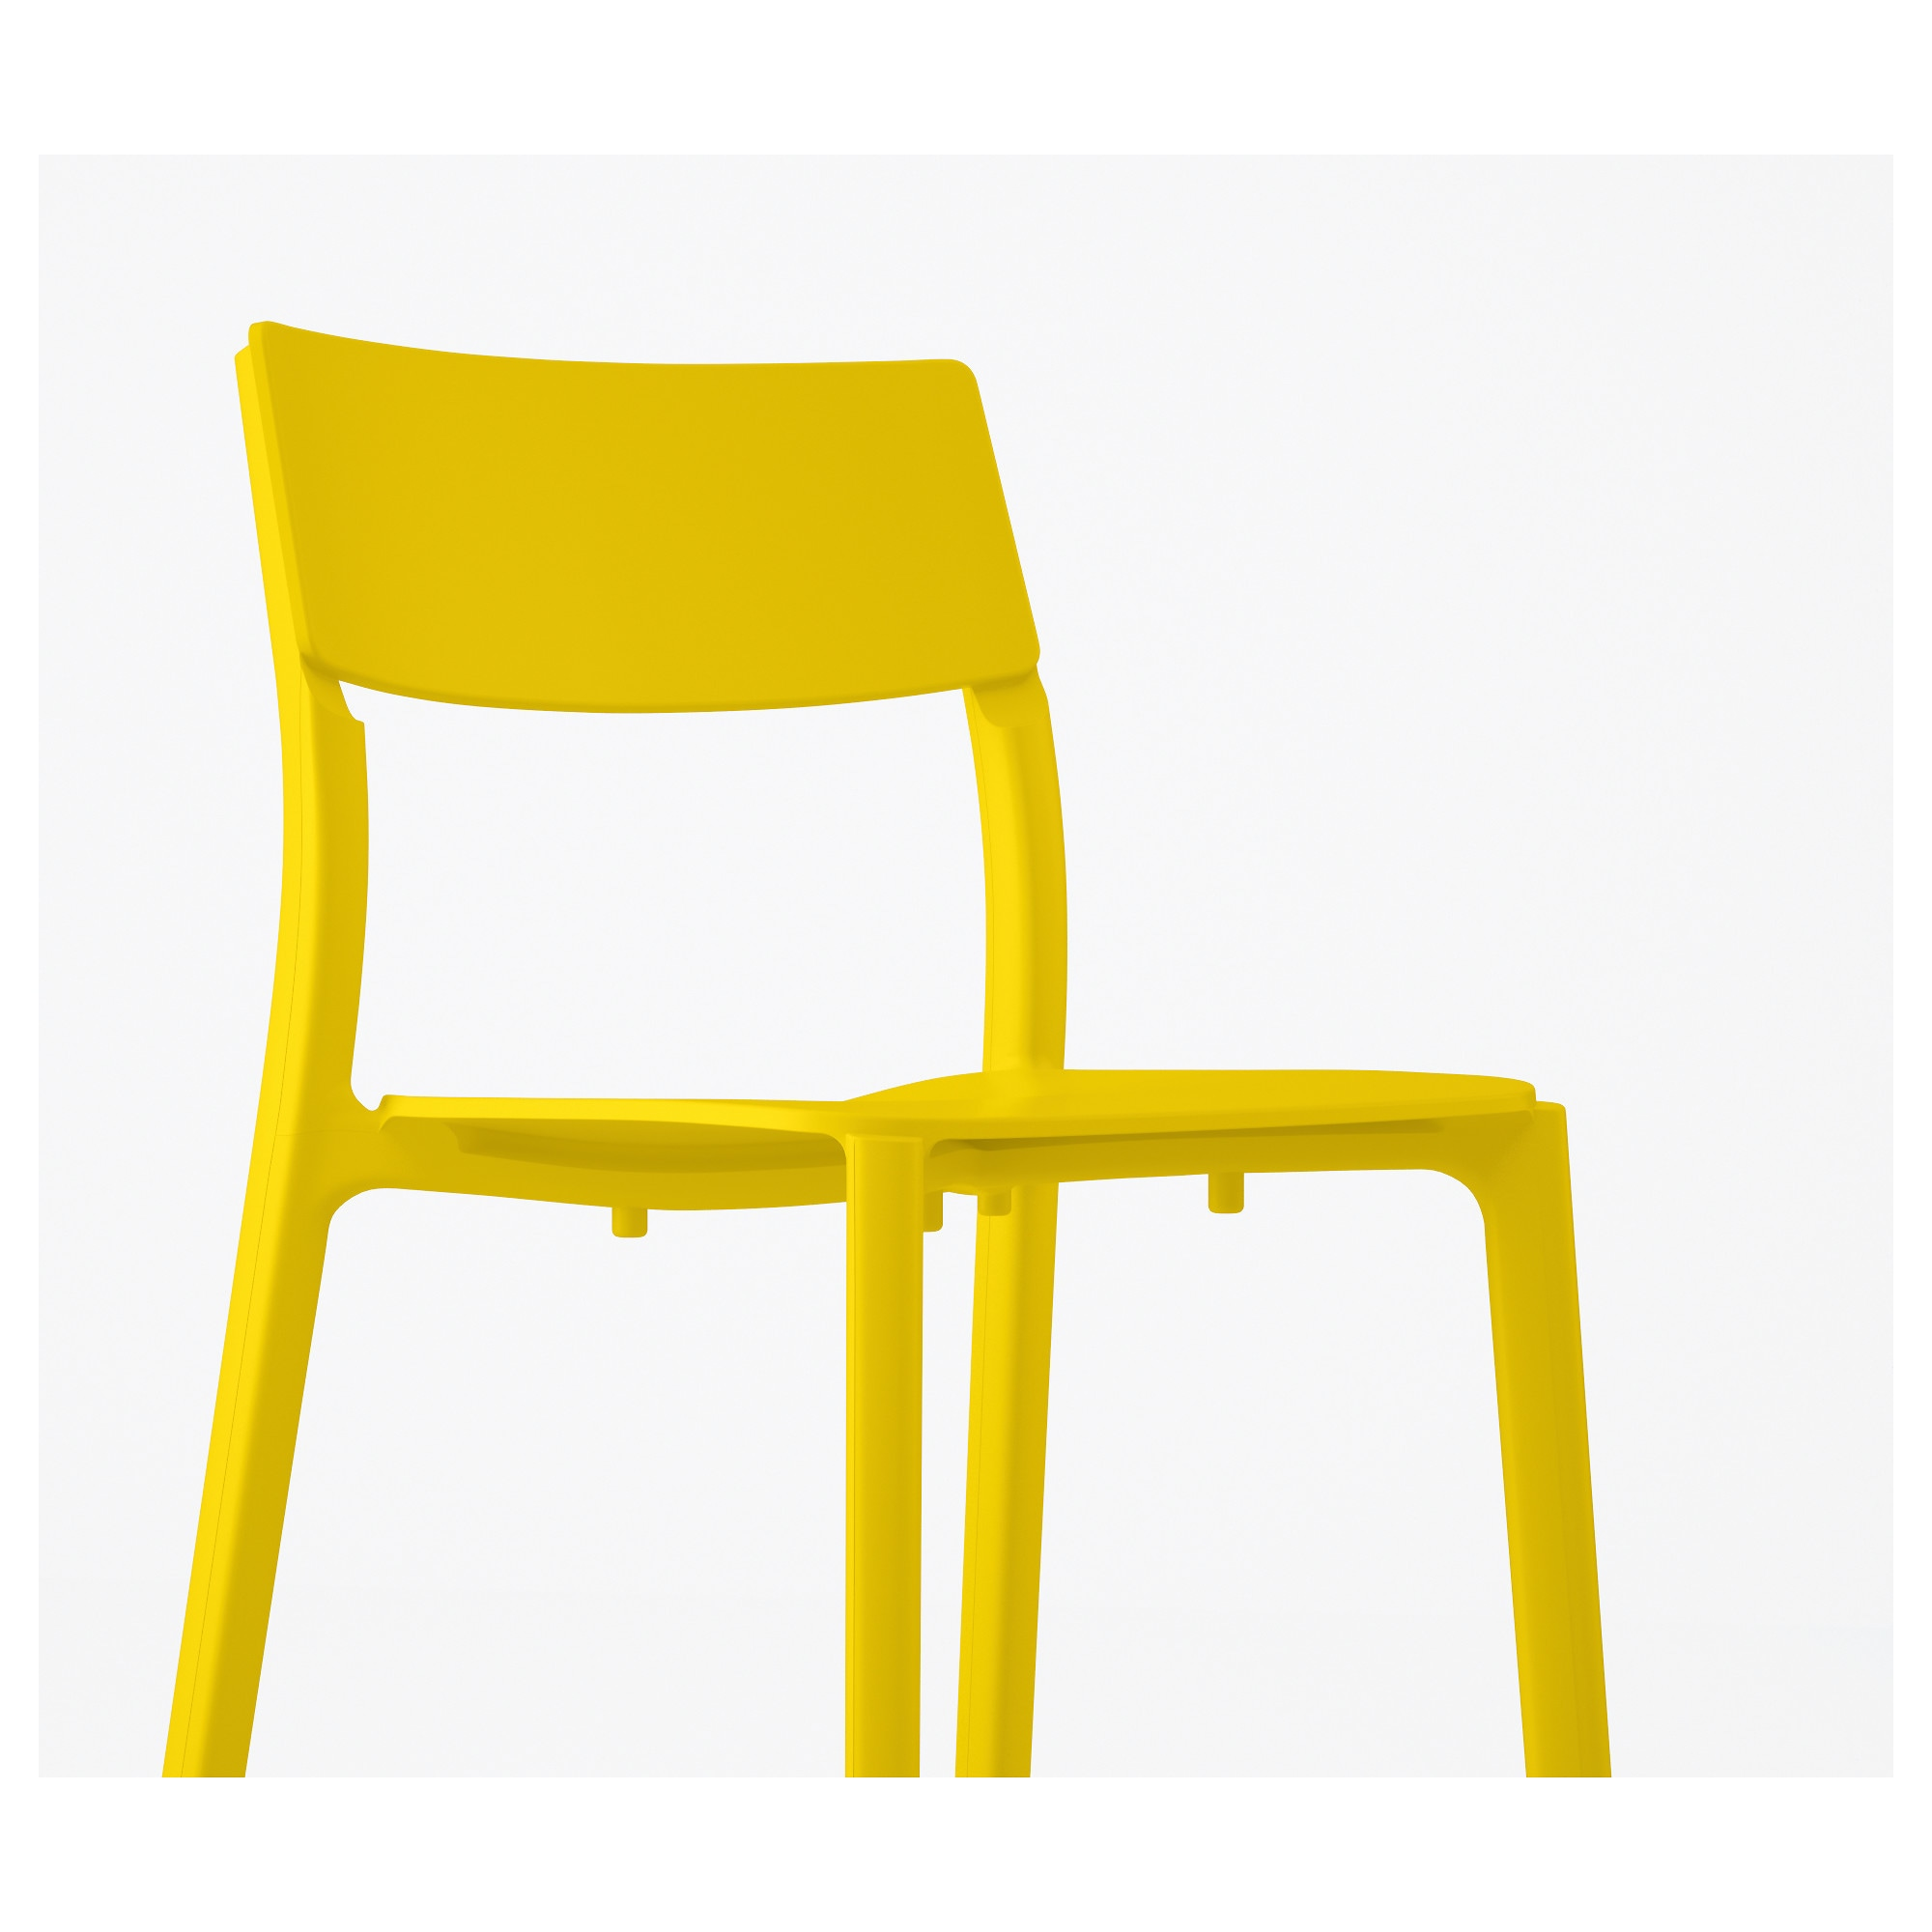 special chair detail image for rentals main images barcelona events additional furniture prod yellow product